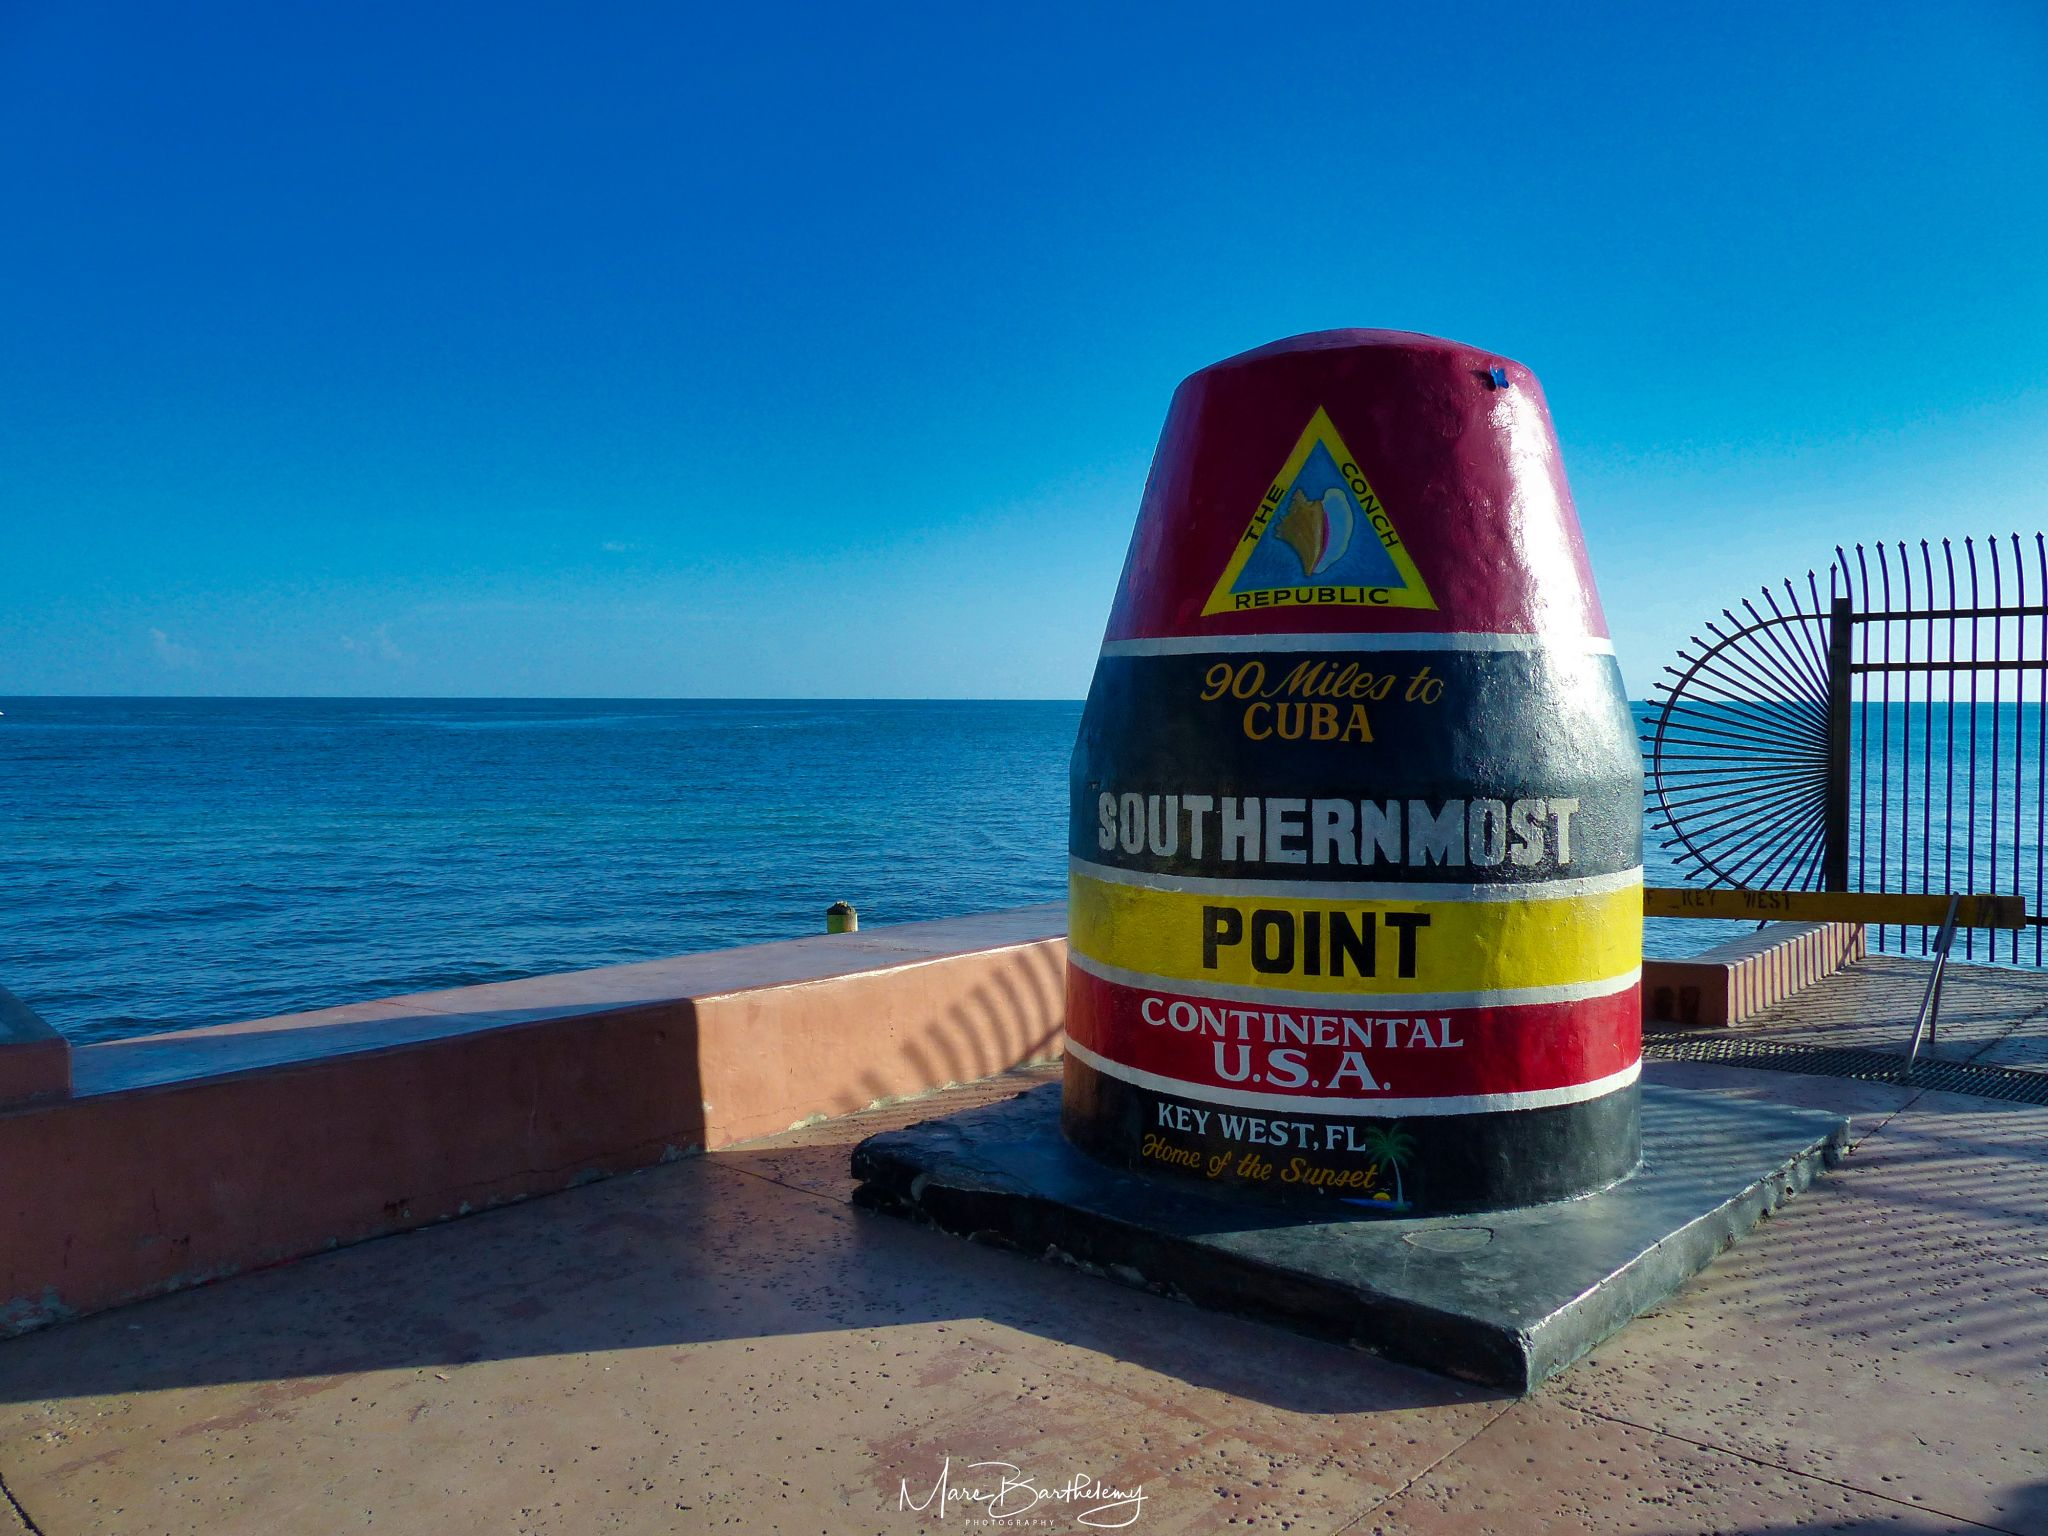 Southernmost Point of the Continental US, USA